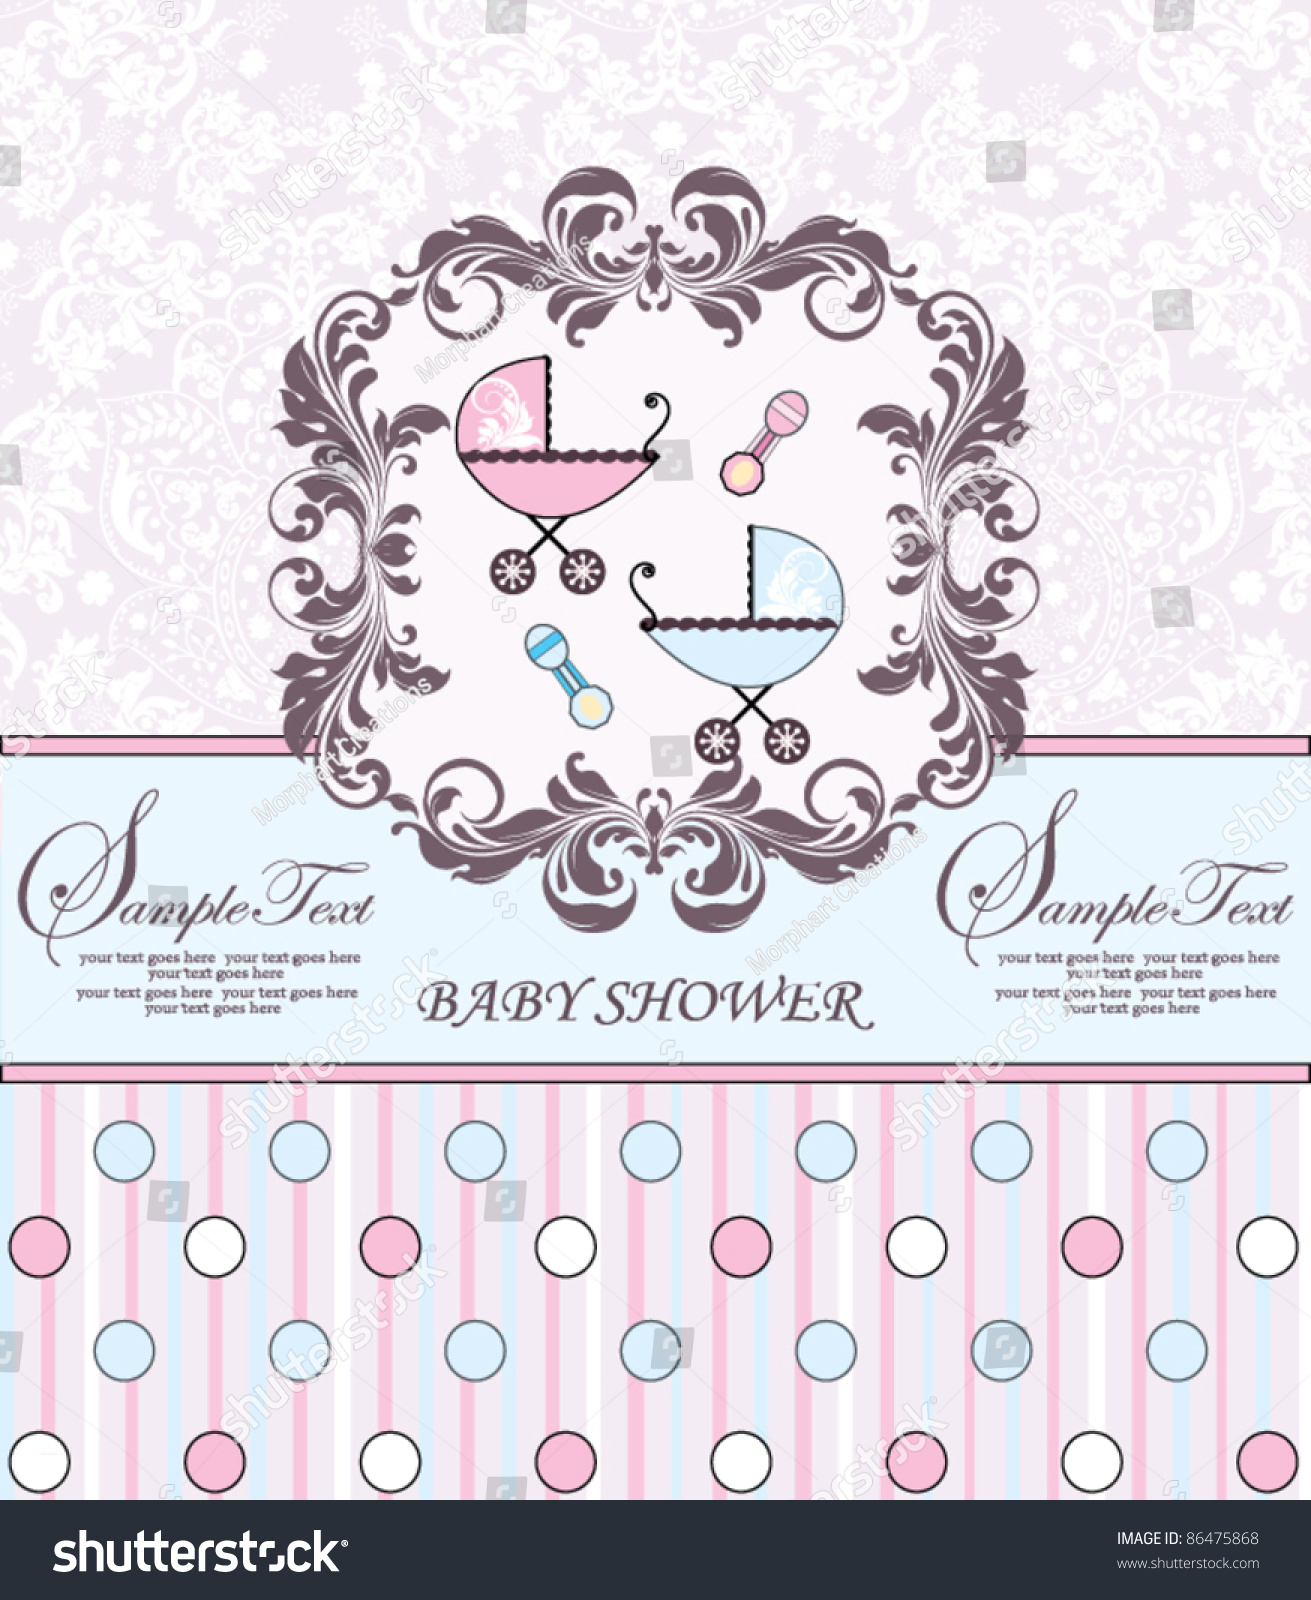 Twins Baby Shower Invitation Stock Vector Shutterstock